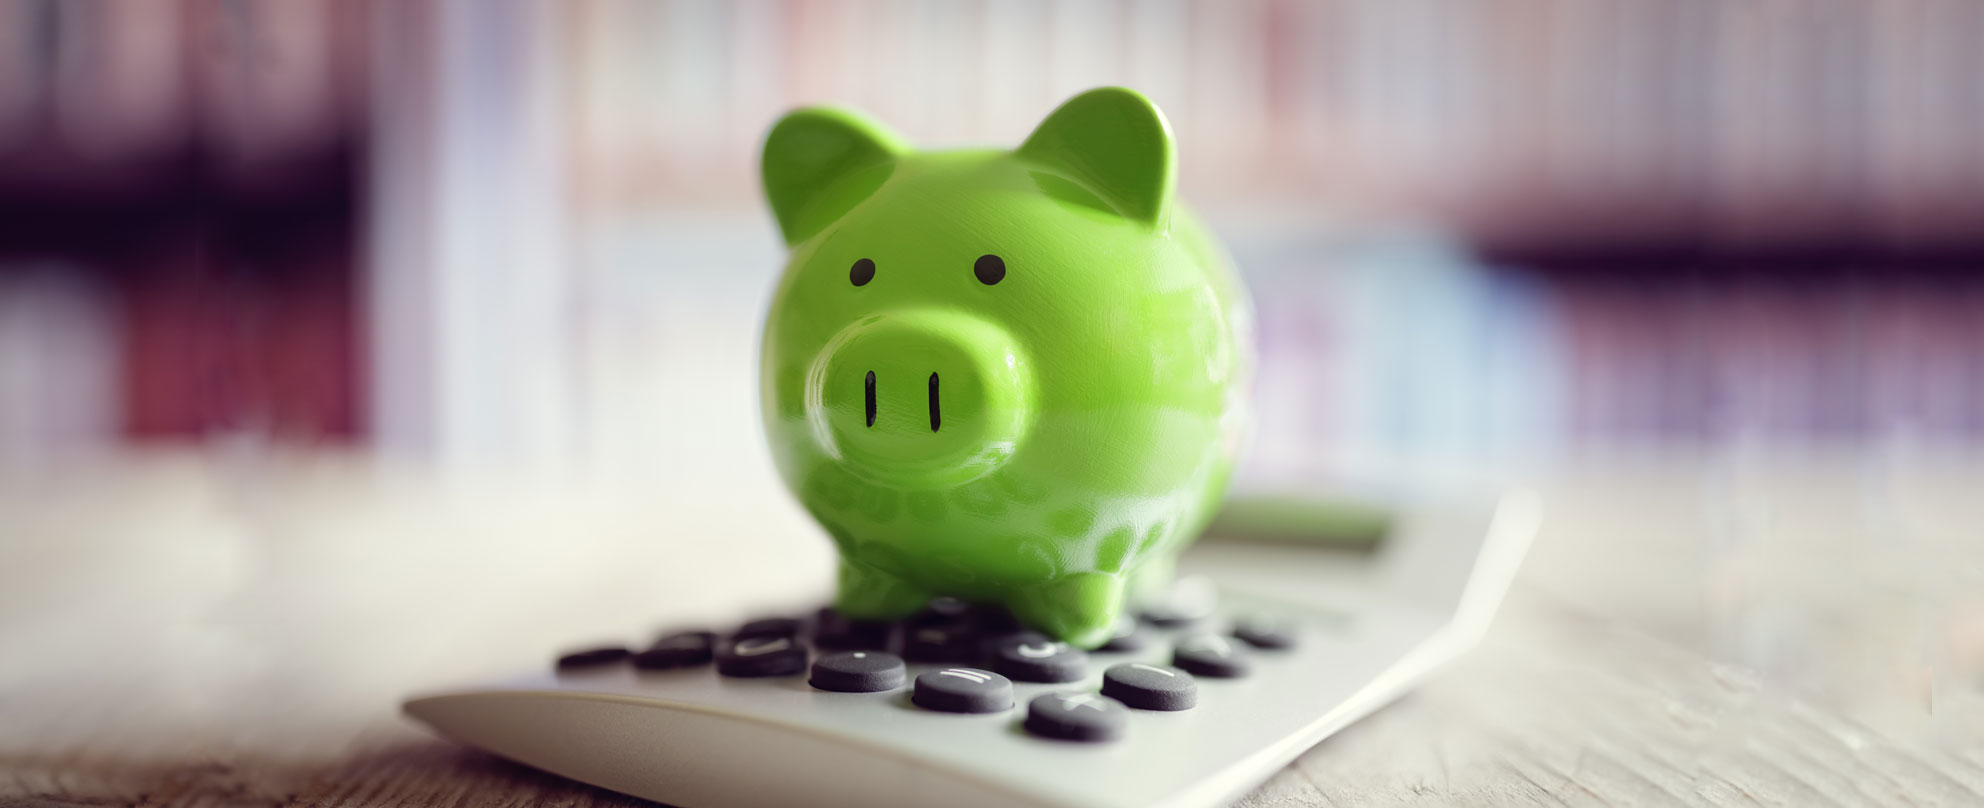 Close-up image of green piggy bank sitting on a calculator.